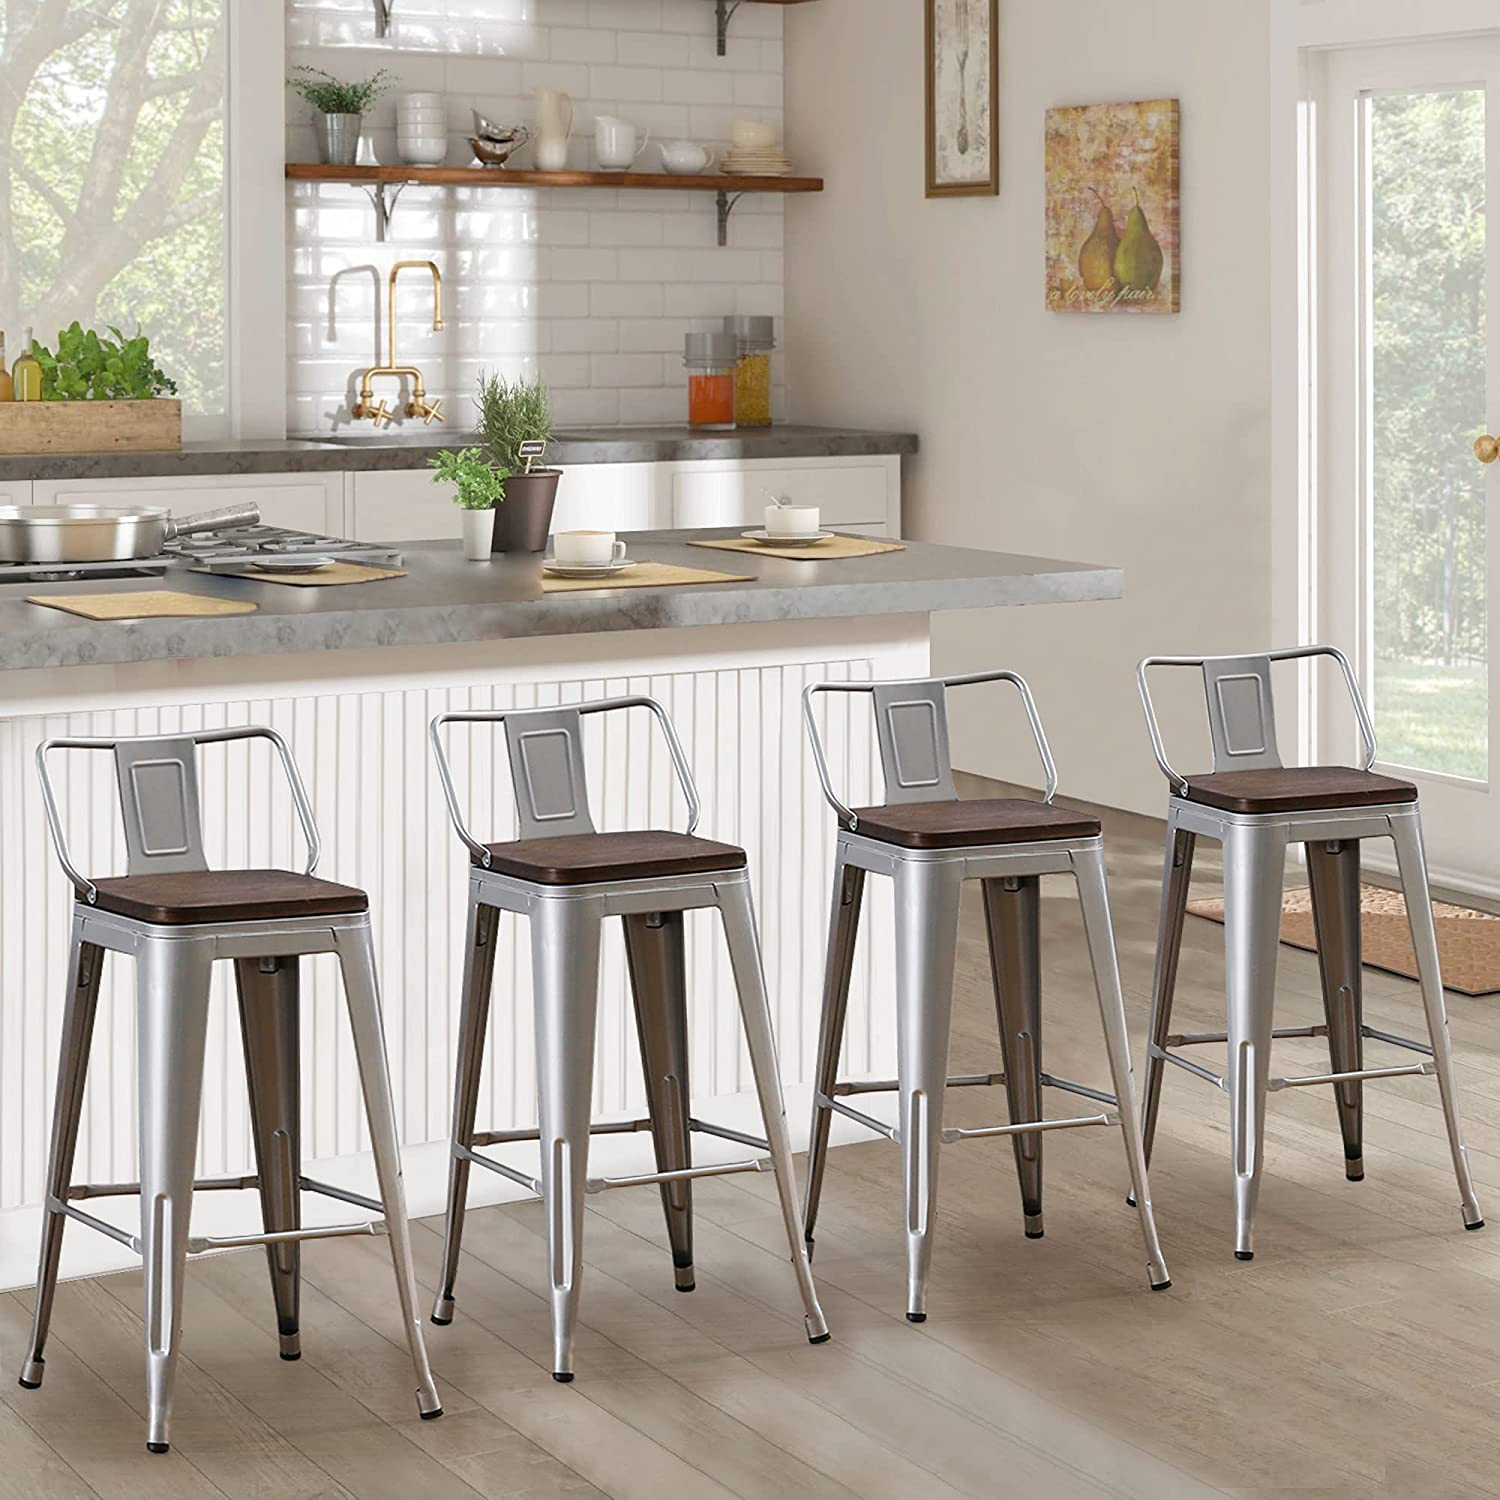 Andeworld Metal Bar Stools Set of 9 Kitchen Counter Stools Bristro  Barstools Industrial Bar Stools(29inch Silver with Wooden Seats)